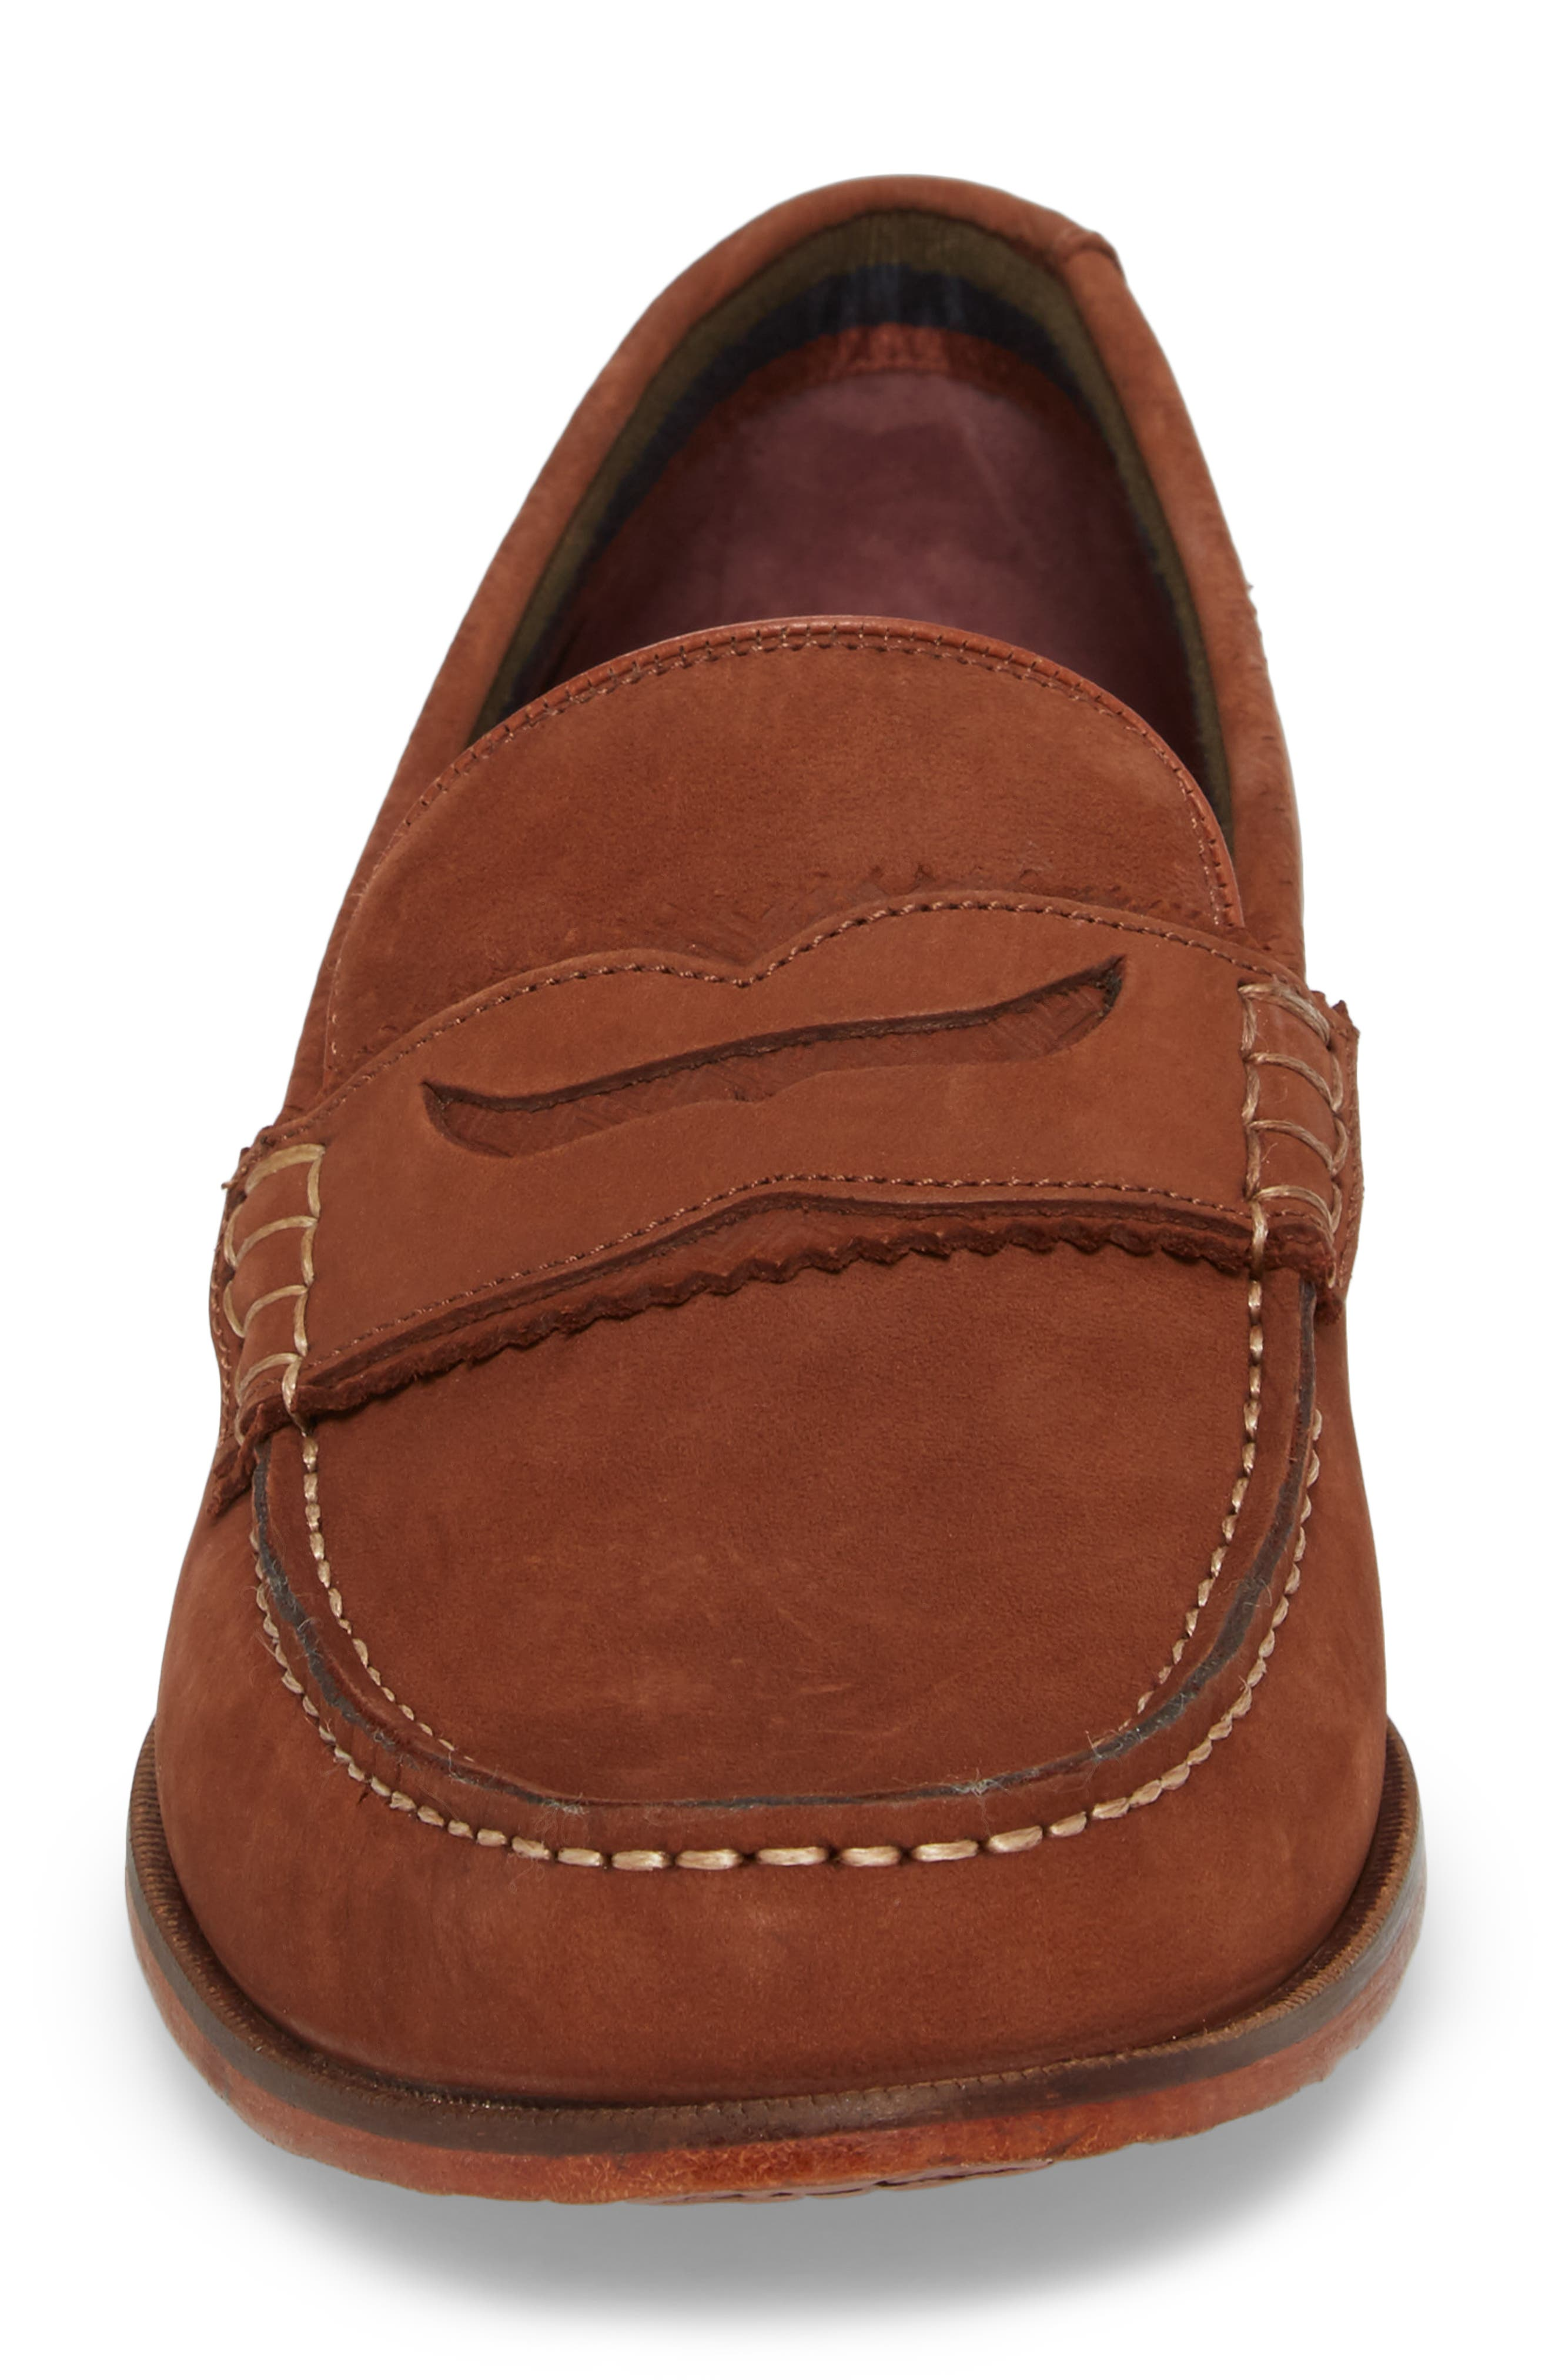 Miicke 5 Penny Loafer,                             Alternate thumbnail 4, color,                             209